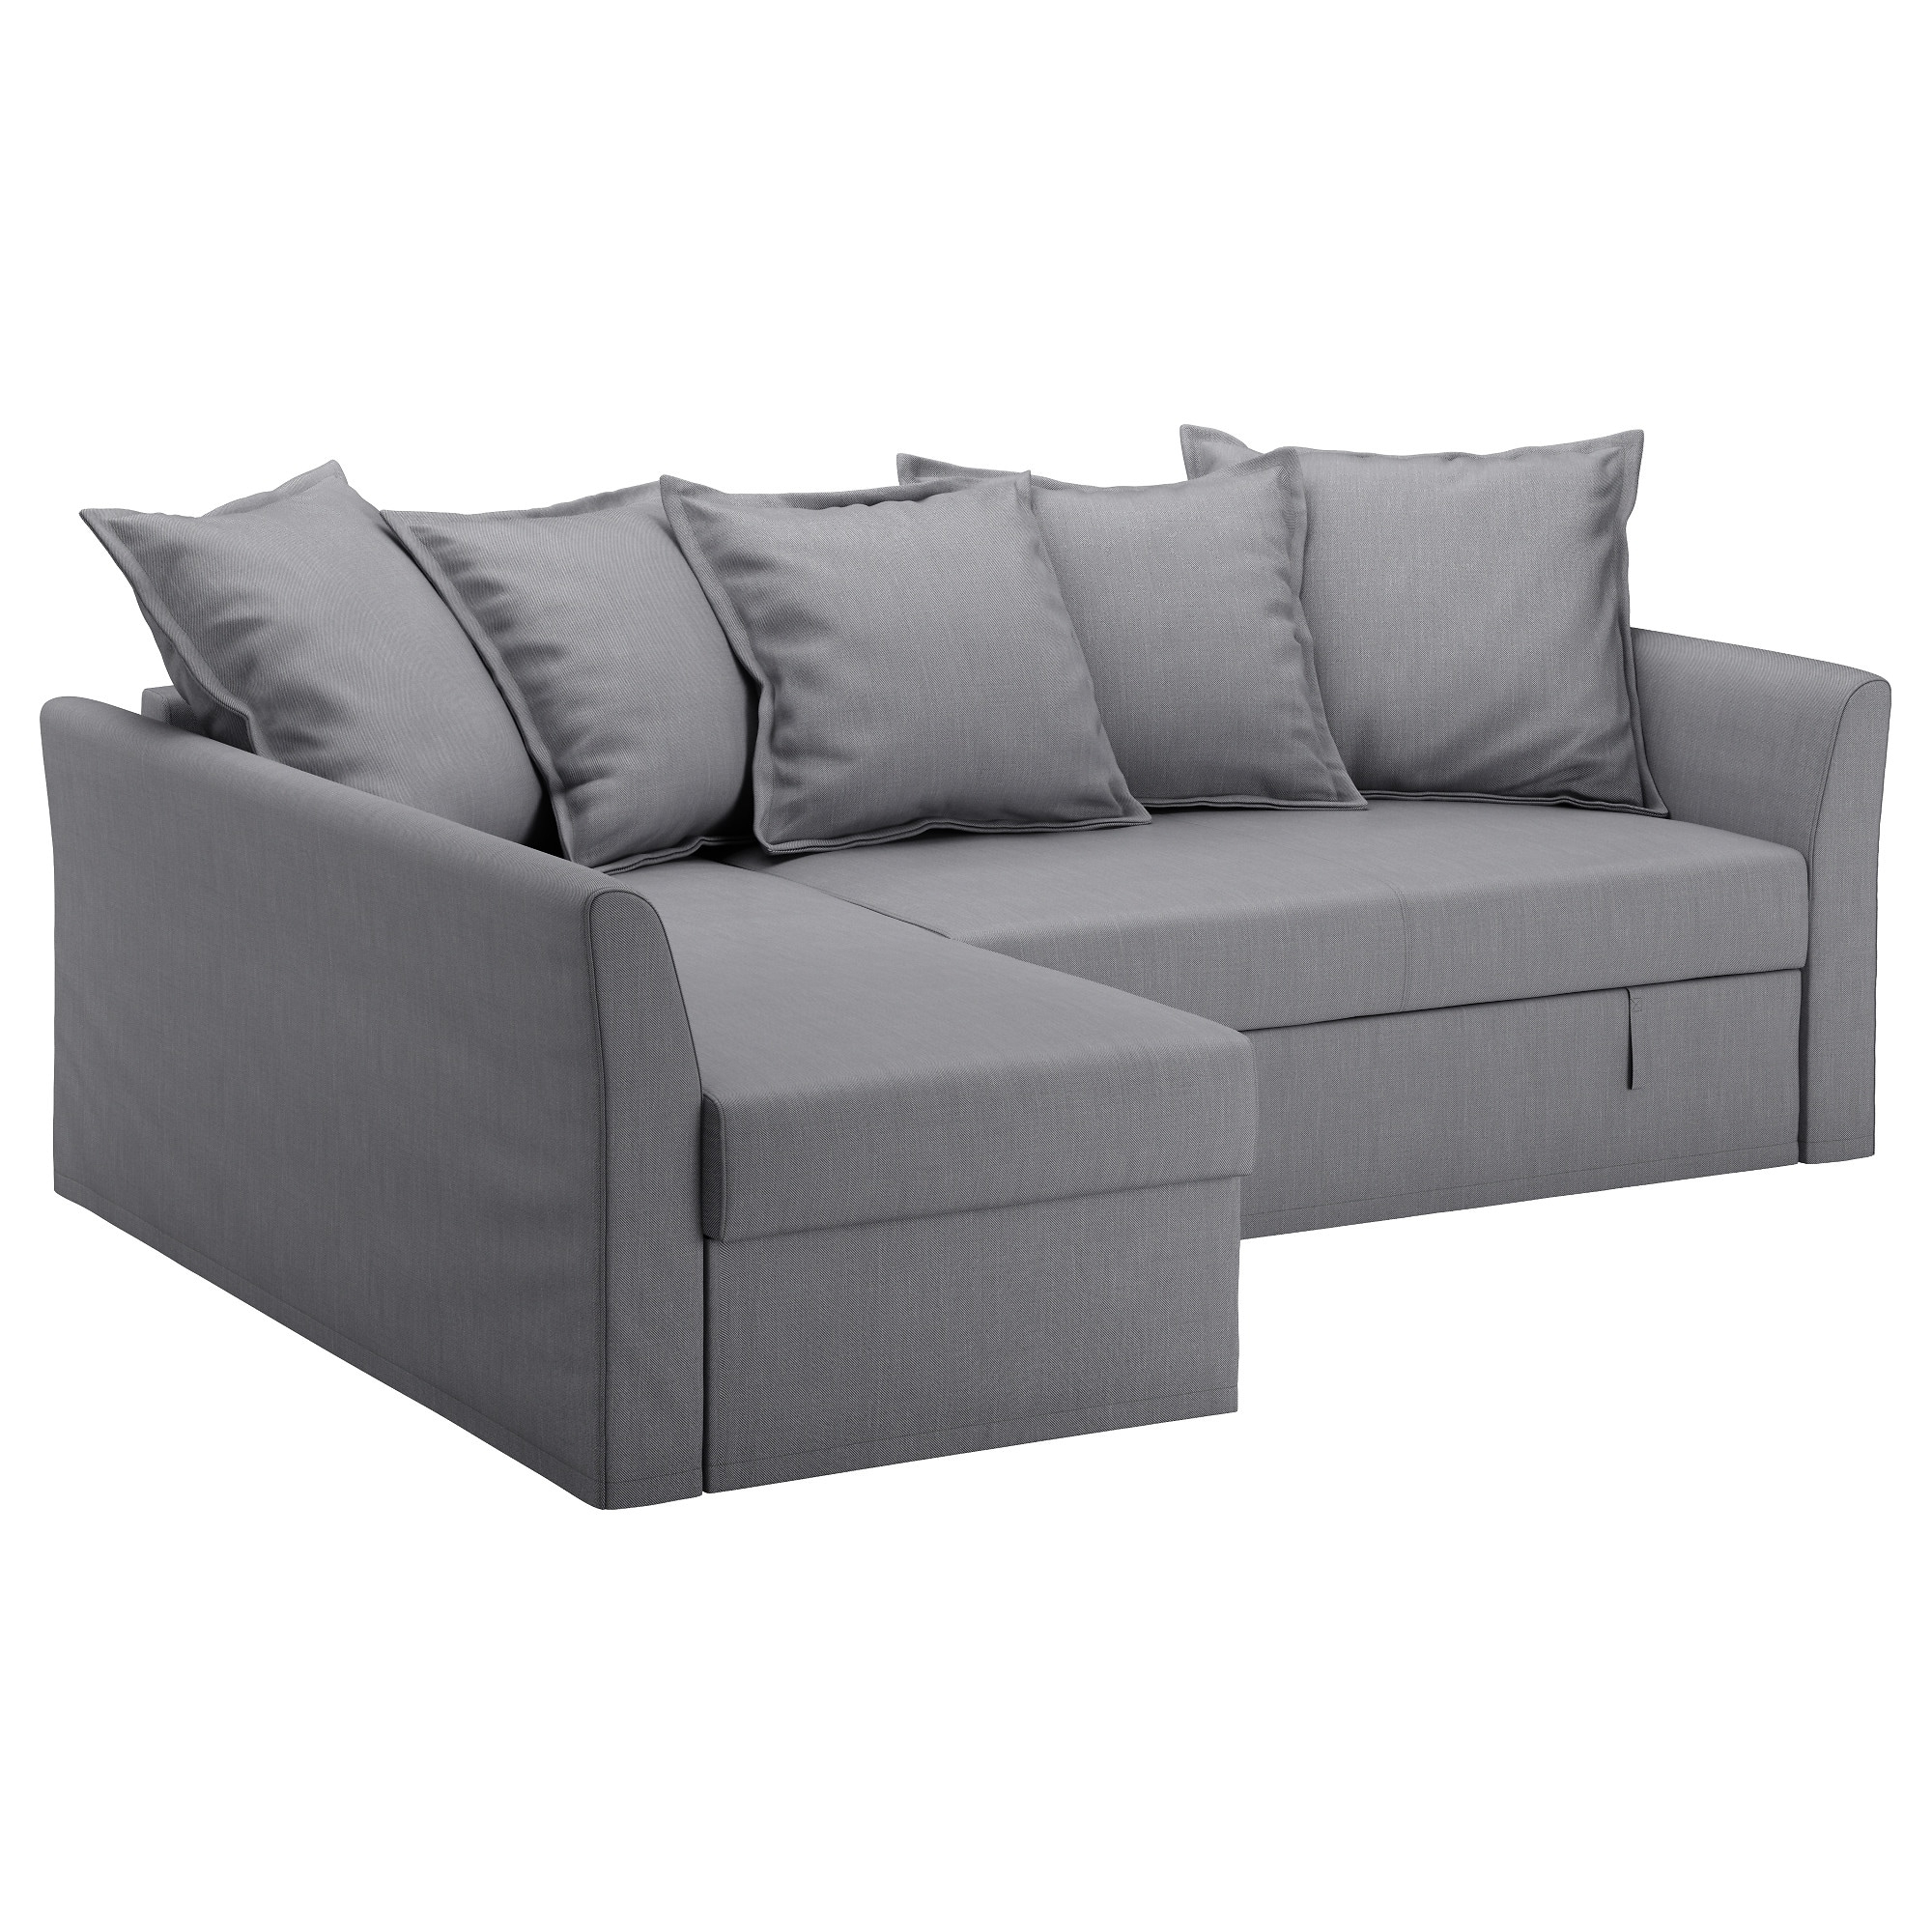 Sofa Beds Chairs Intended For Most Recently Released Holmsund Corner Sofa Bed Nordvalla Medium Grey – Ikea (View 16 of 20)